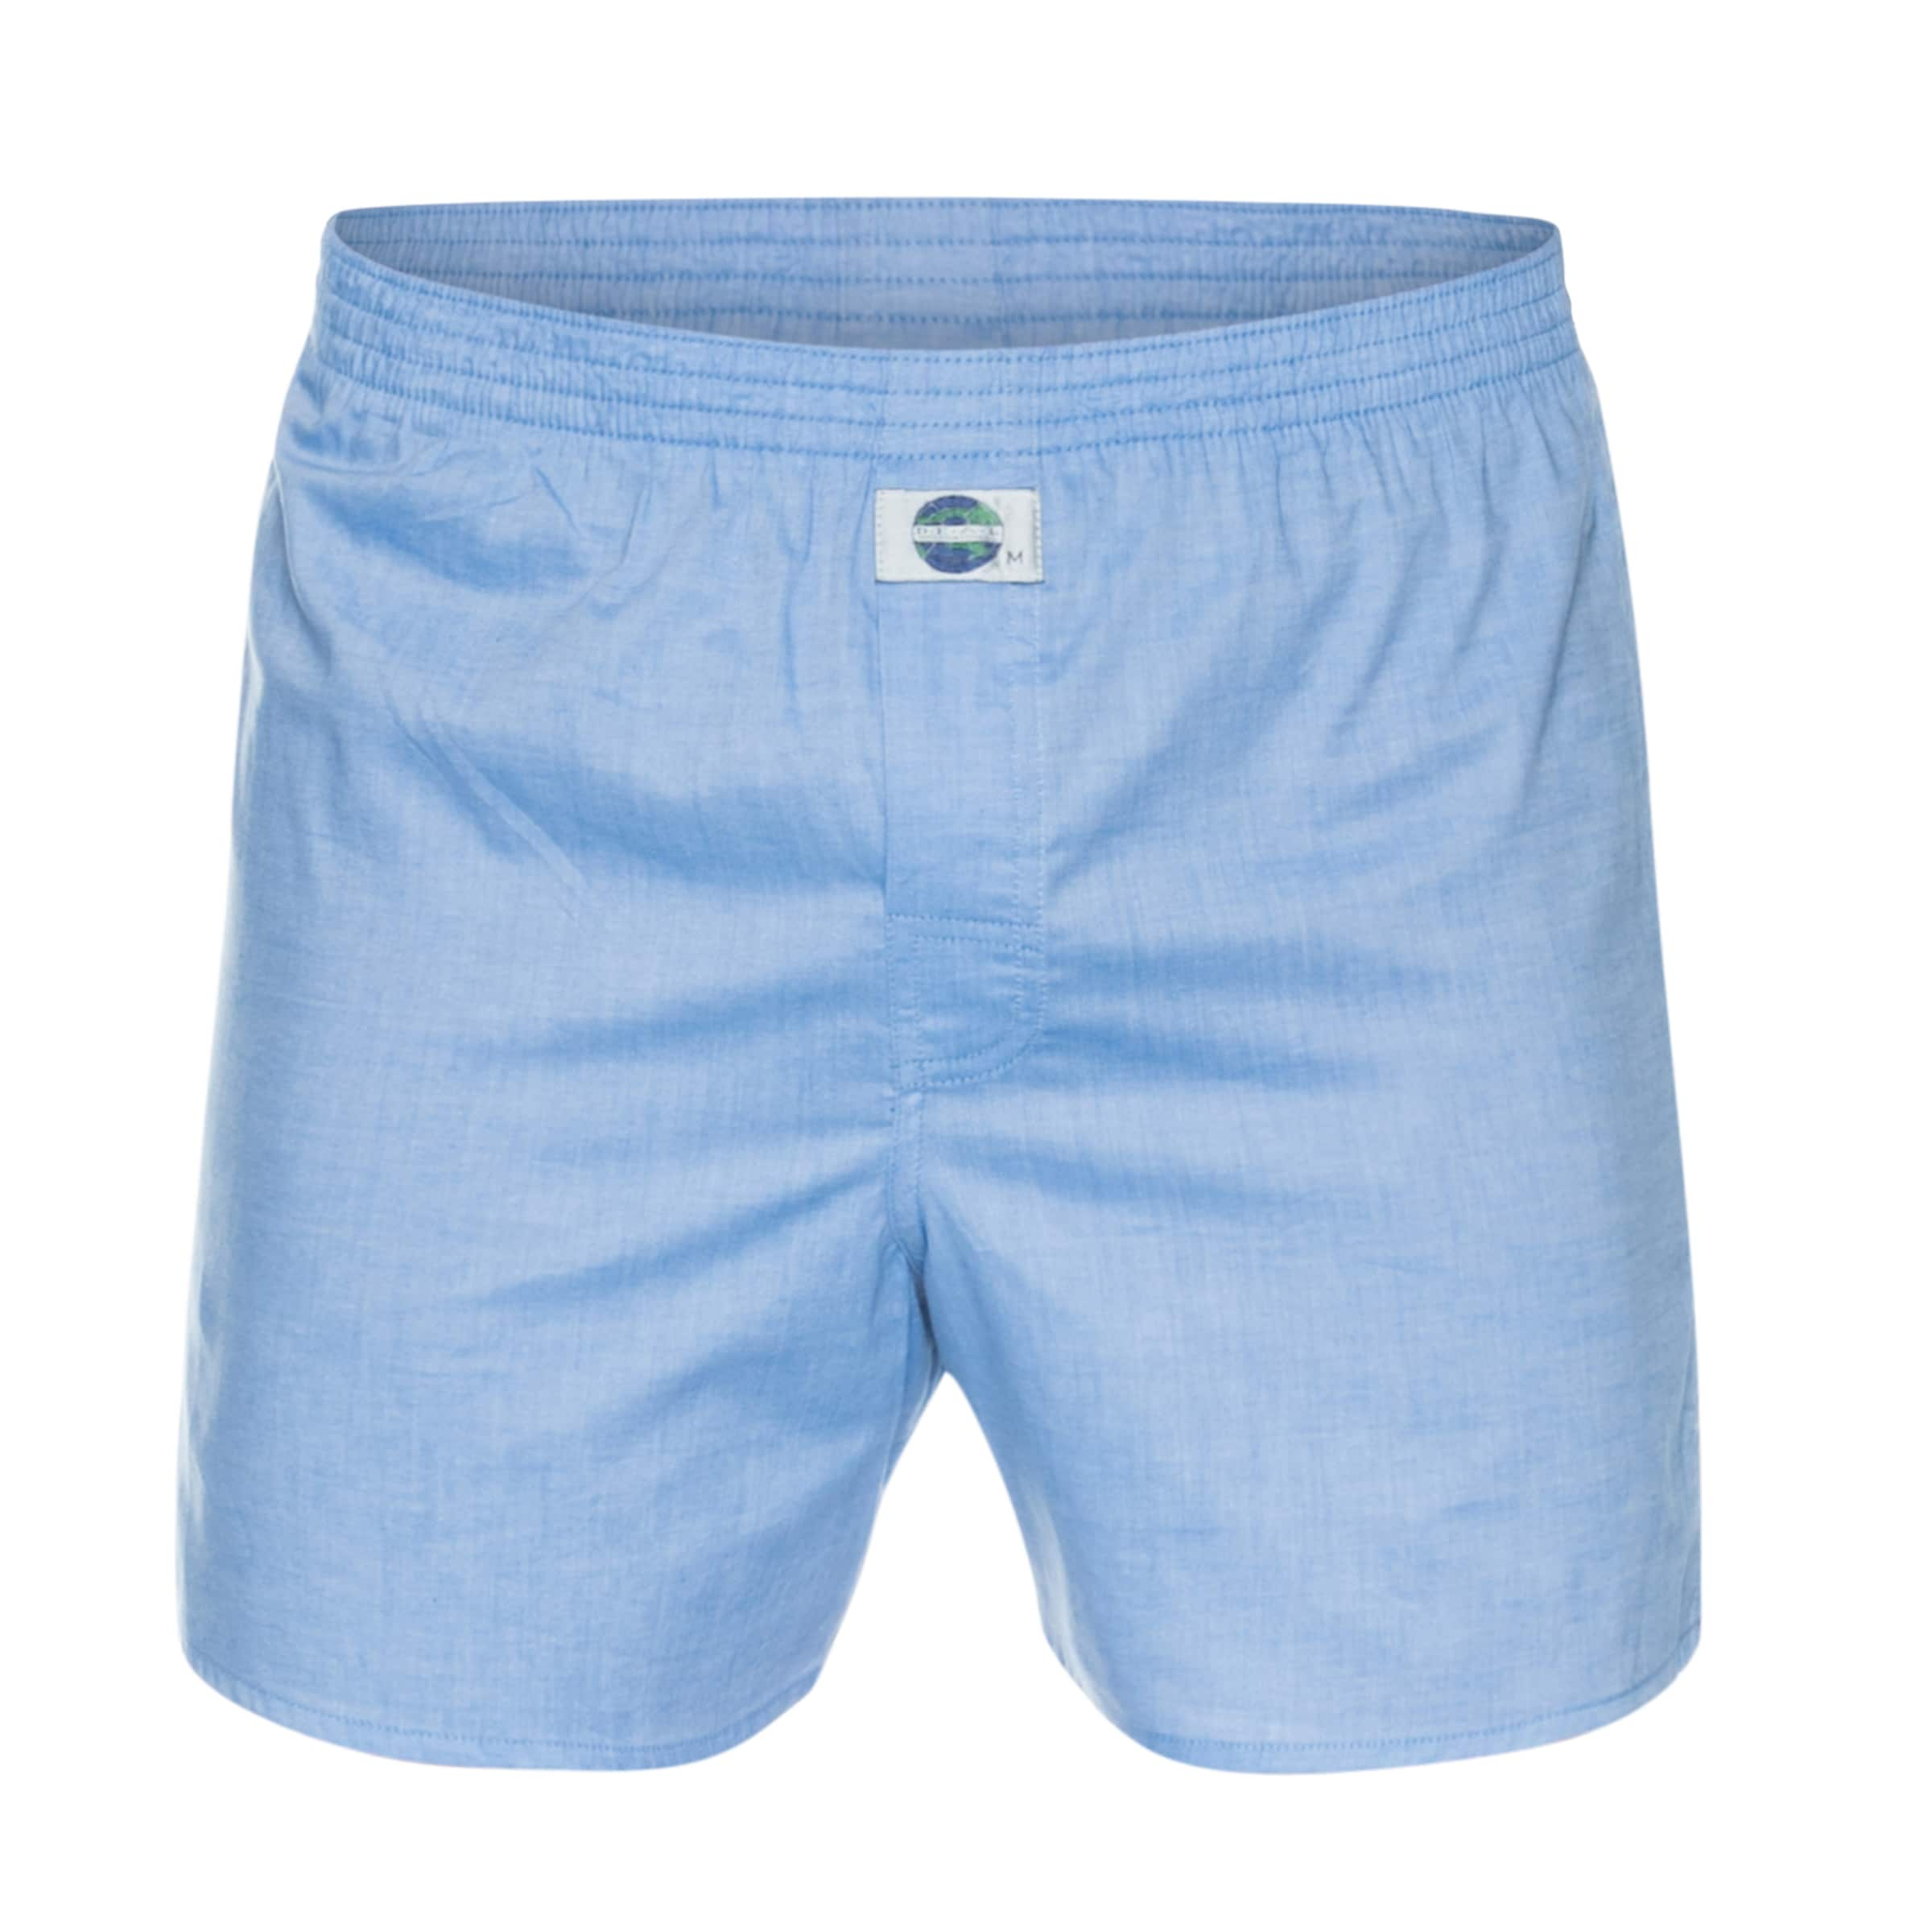 D International 'chambray' Boxershorts In l Hellblau a e zpVSUM